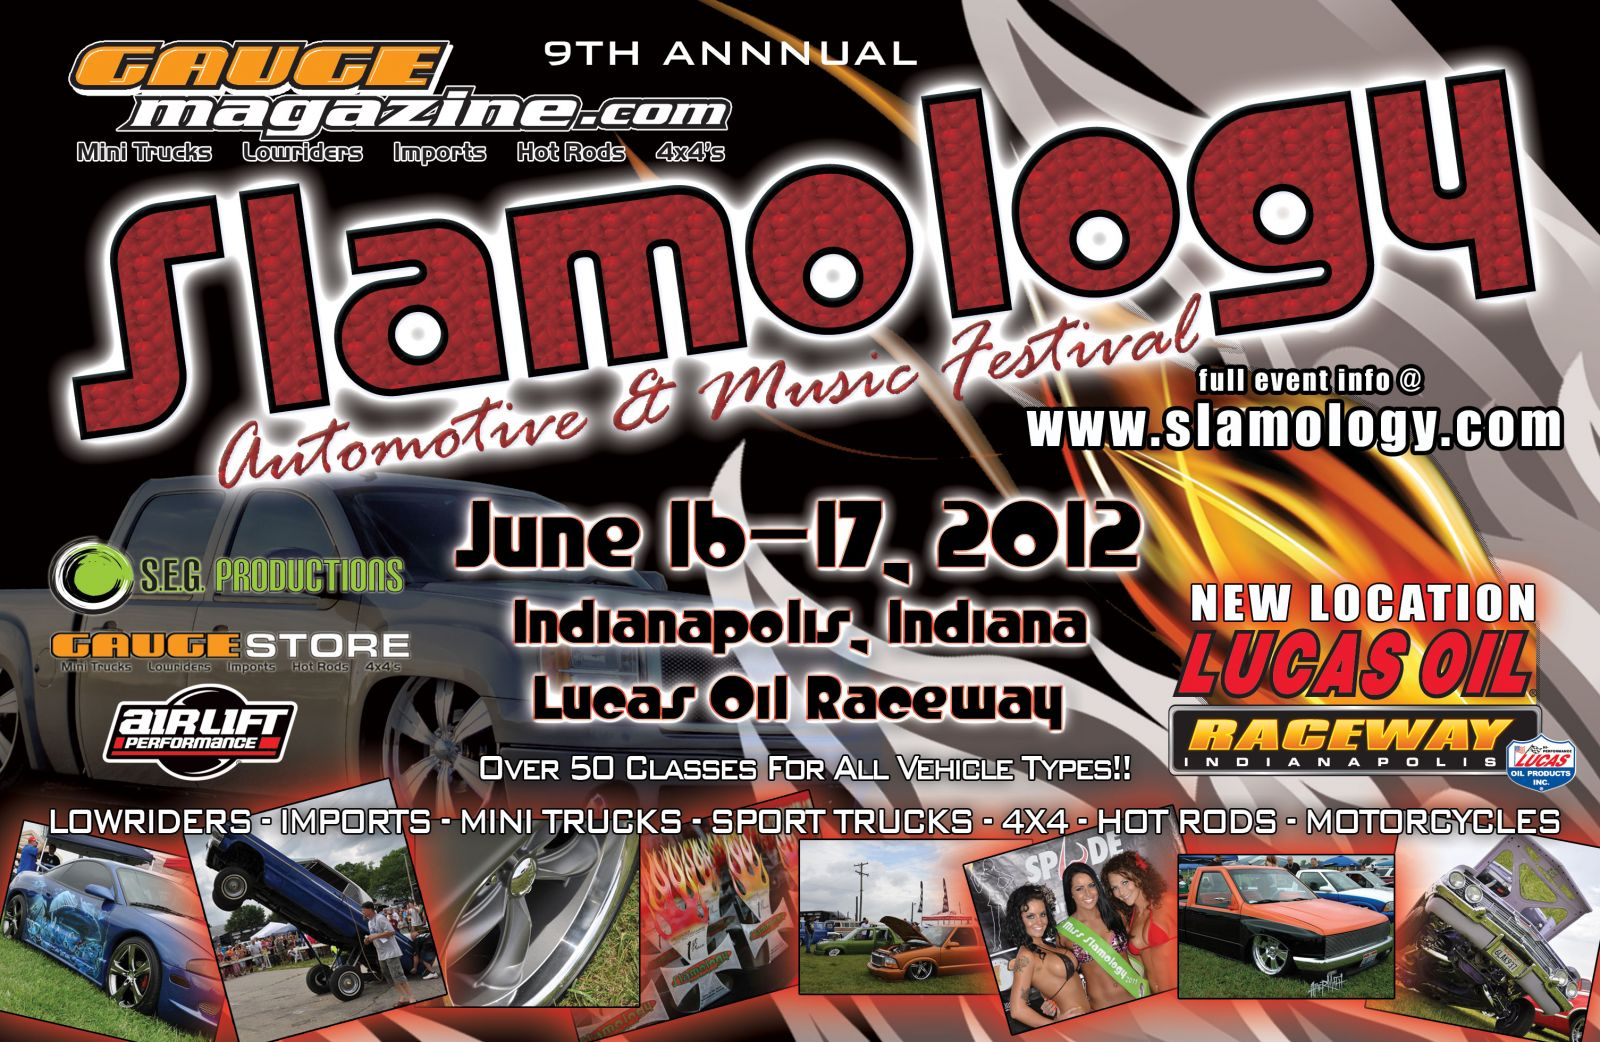 Slamology 2012 flyer